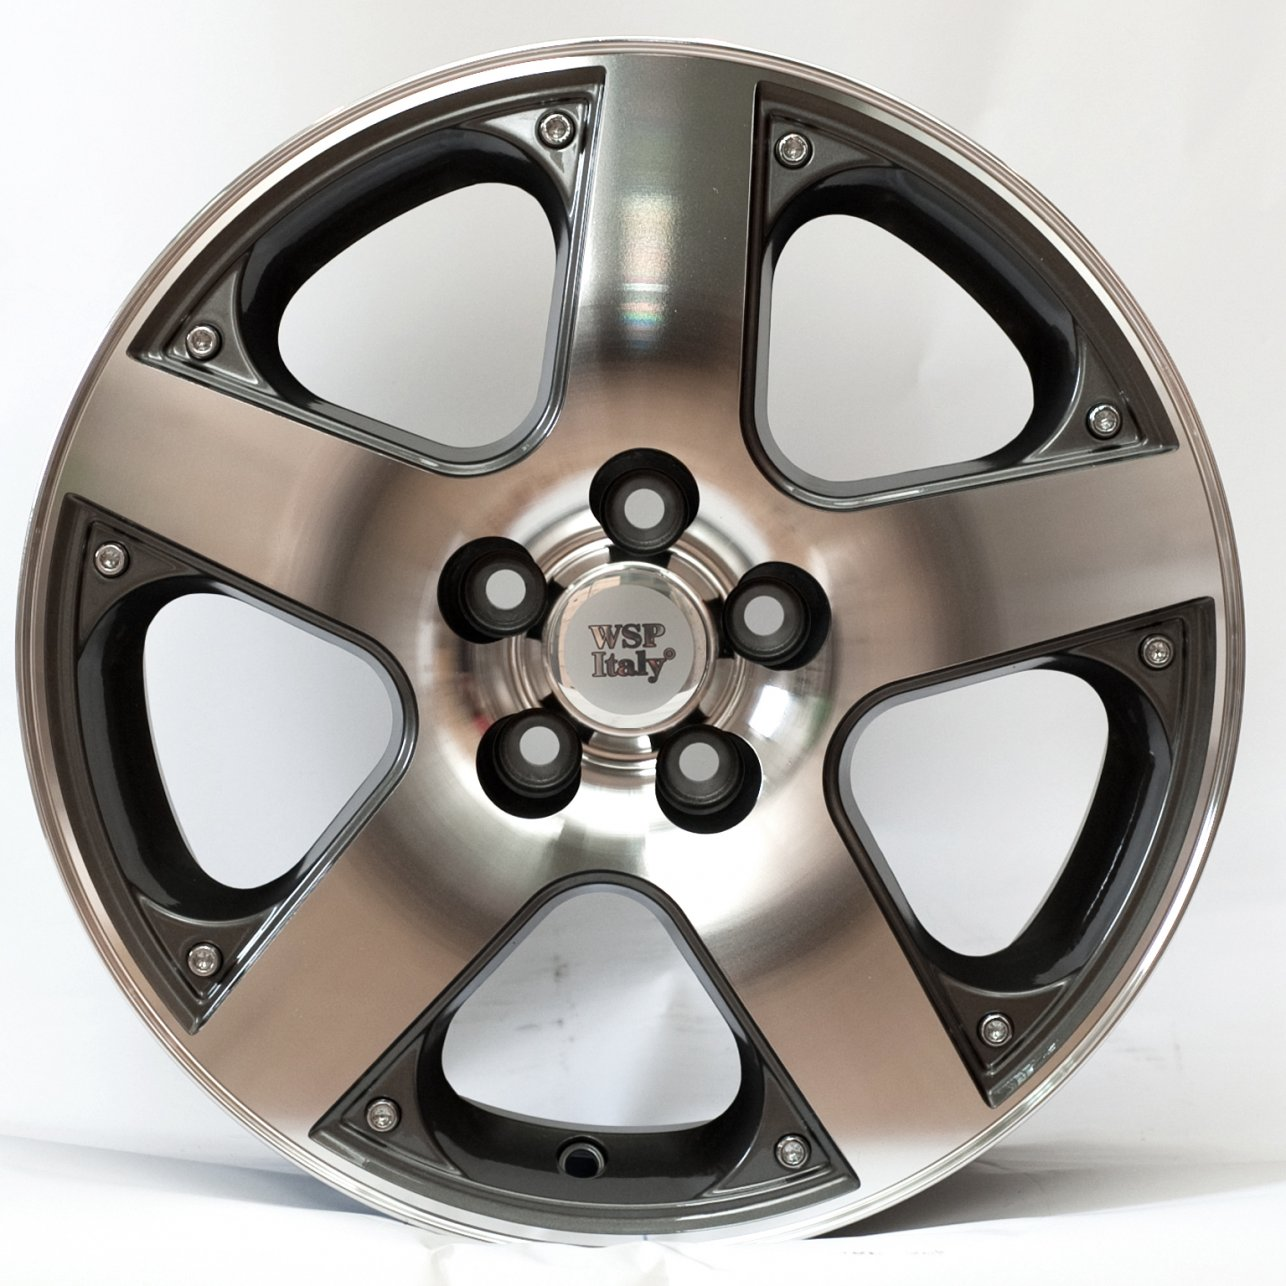 WSP Italy Volkswagen (W430) Sorrento 6,5x15 5x100 ET35 DIA57,1 (anthracite polished)